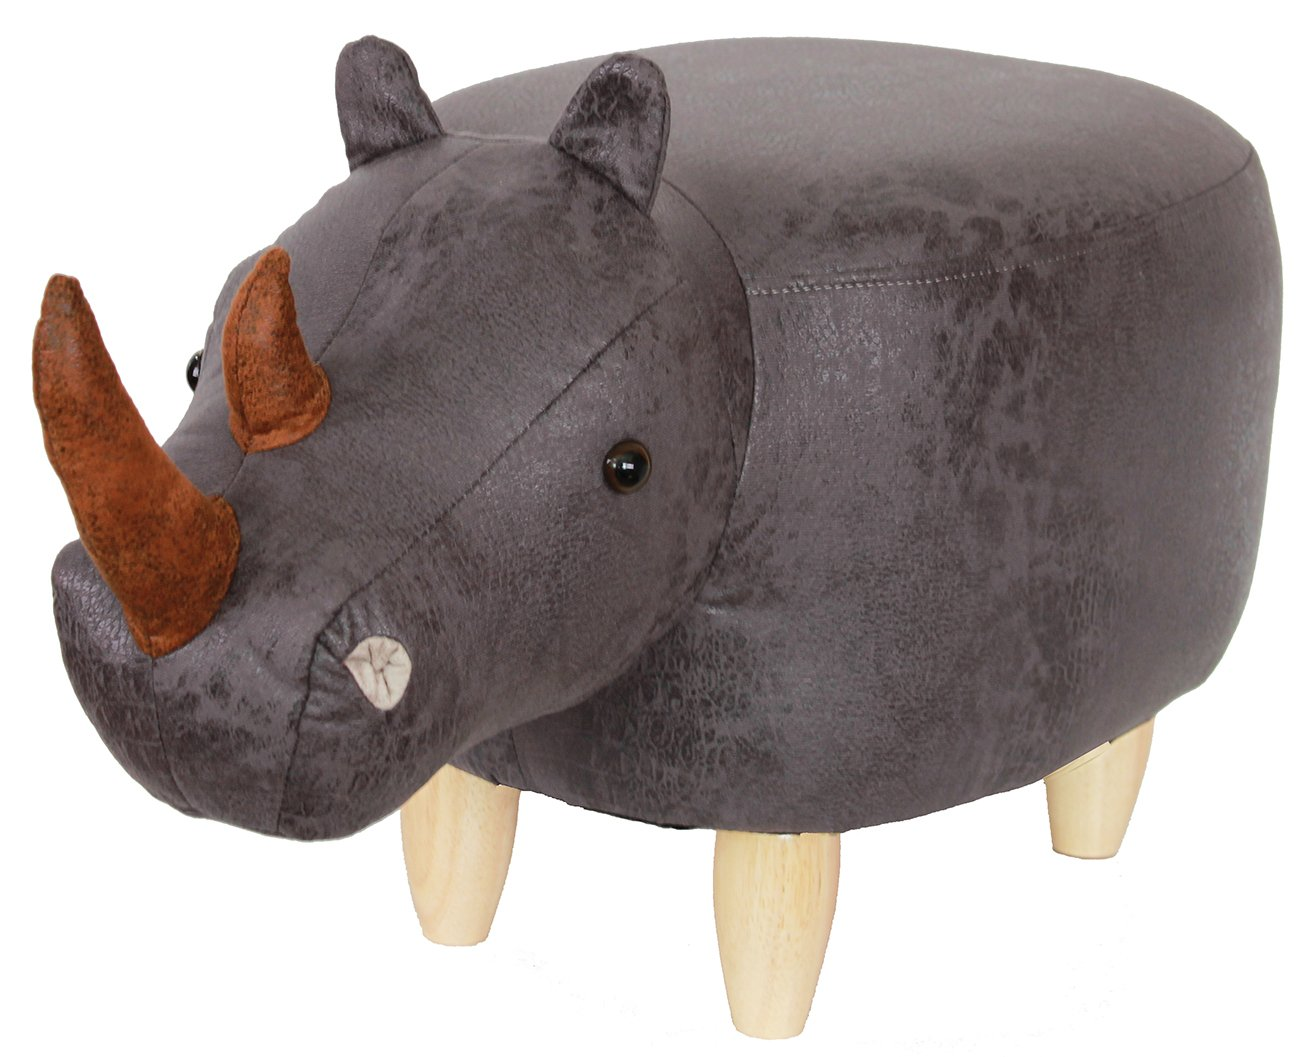 HAOSOON Animal ottoman Series Ottoman Footrest Stool with Vivid Adorable Animal-Like Features(Rhinoceros) (Grey)